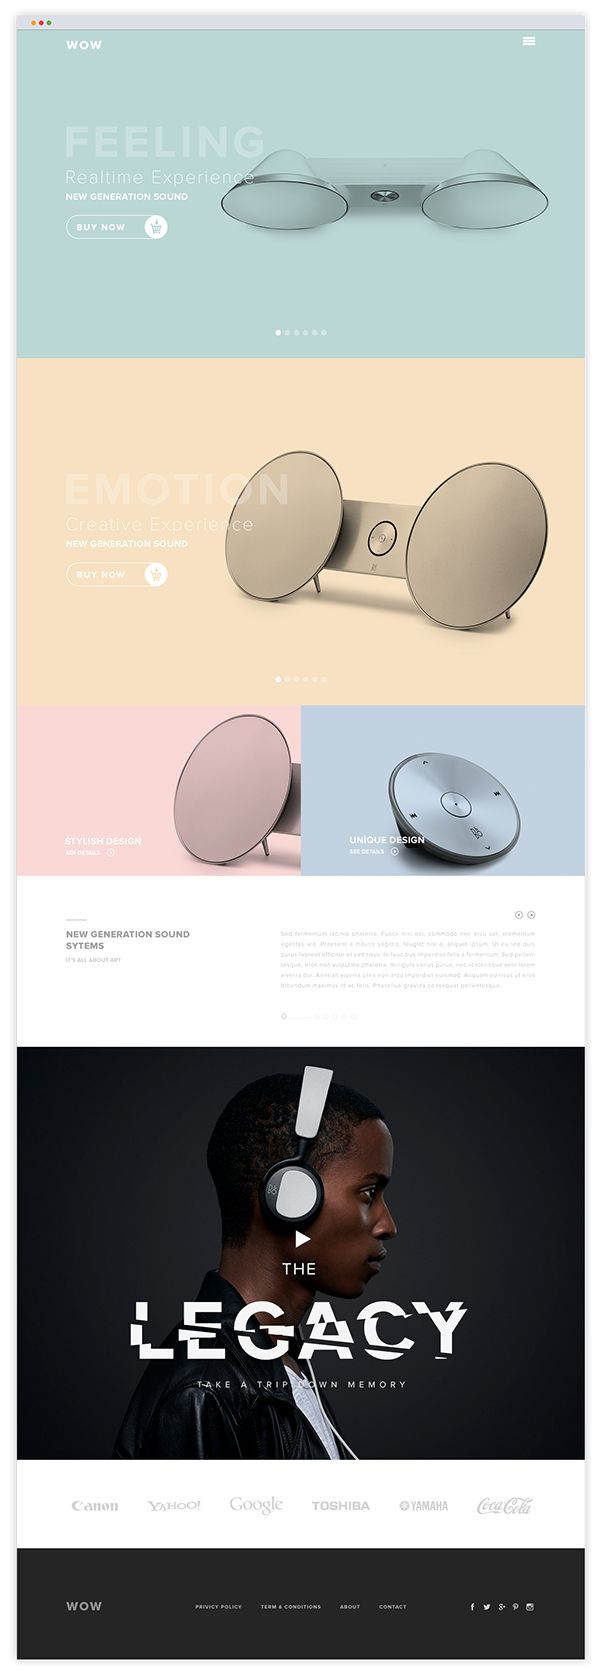 wow on Behance